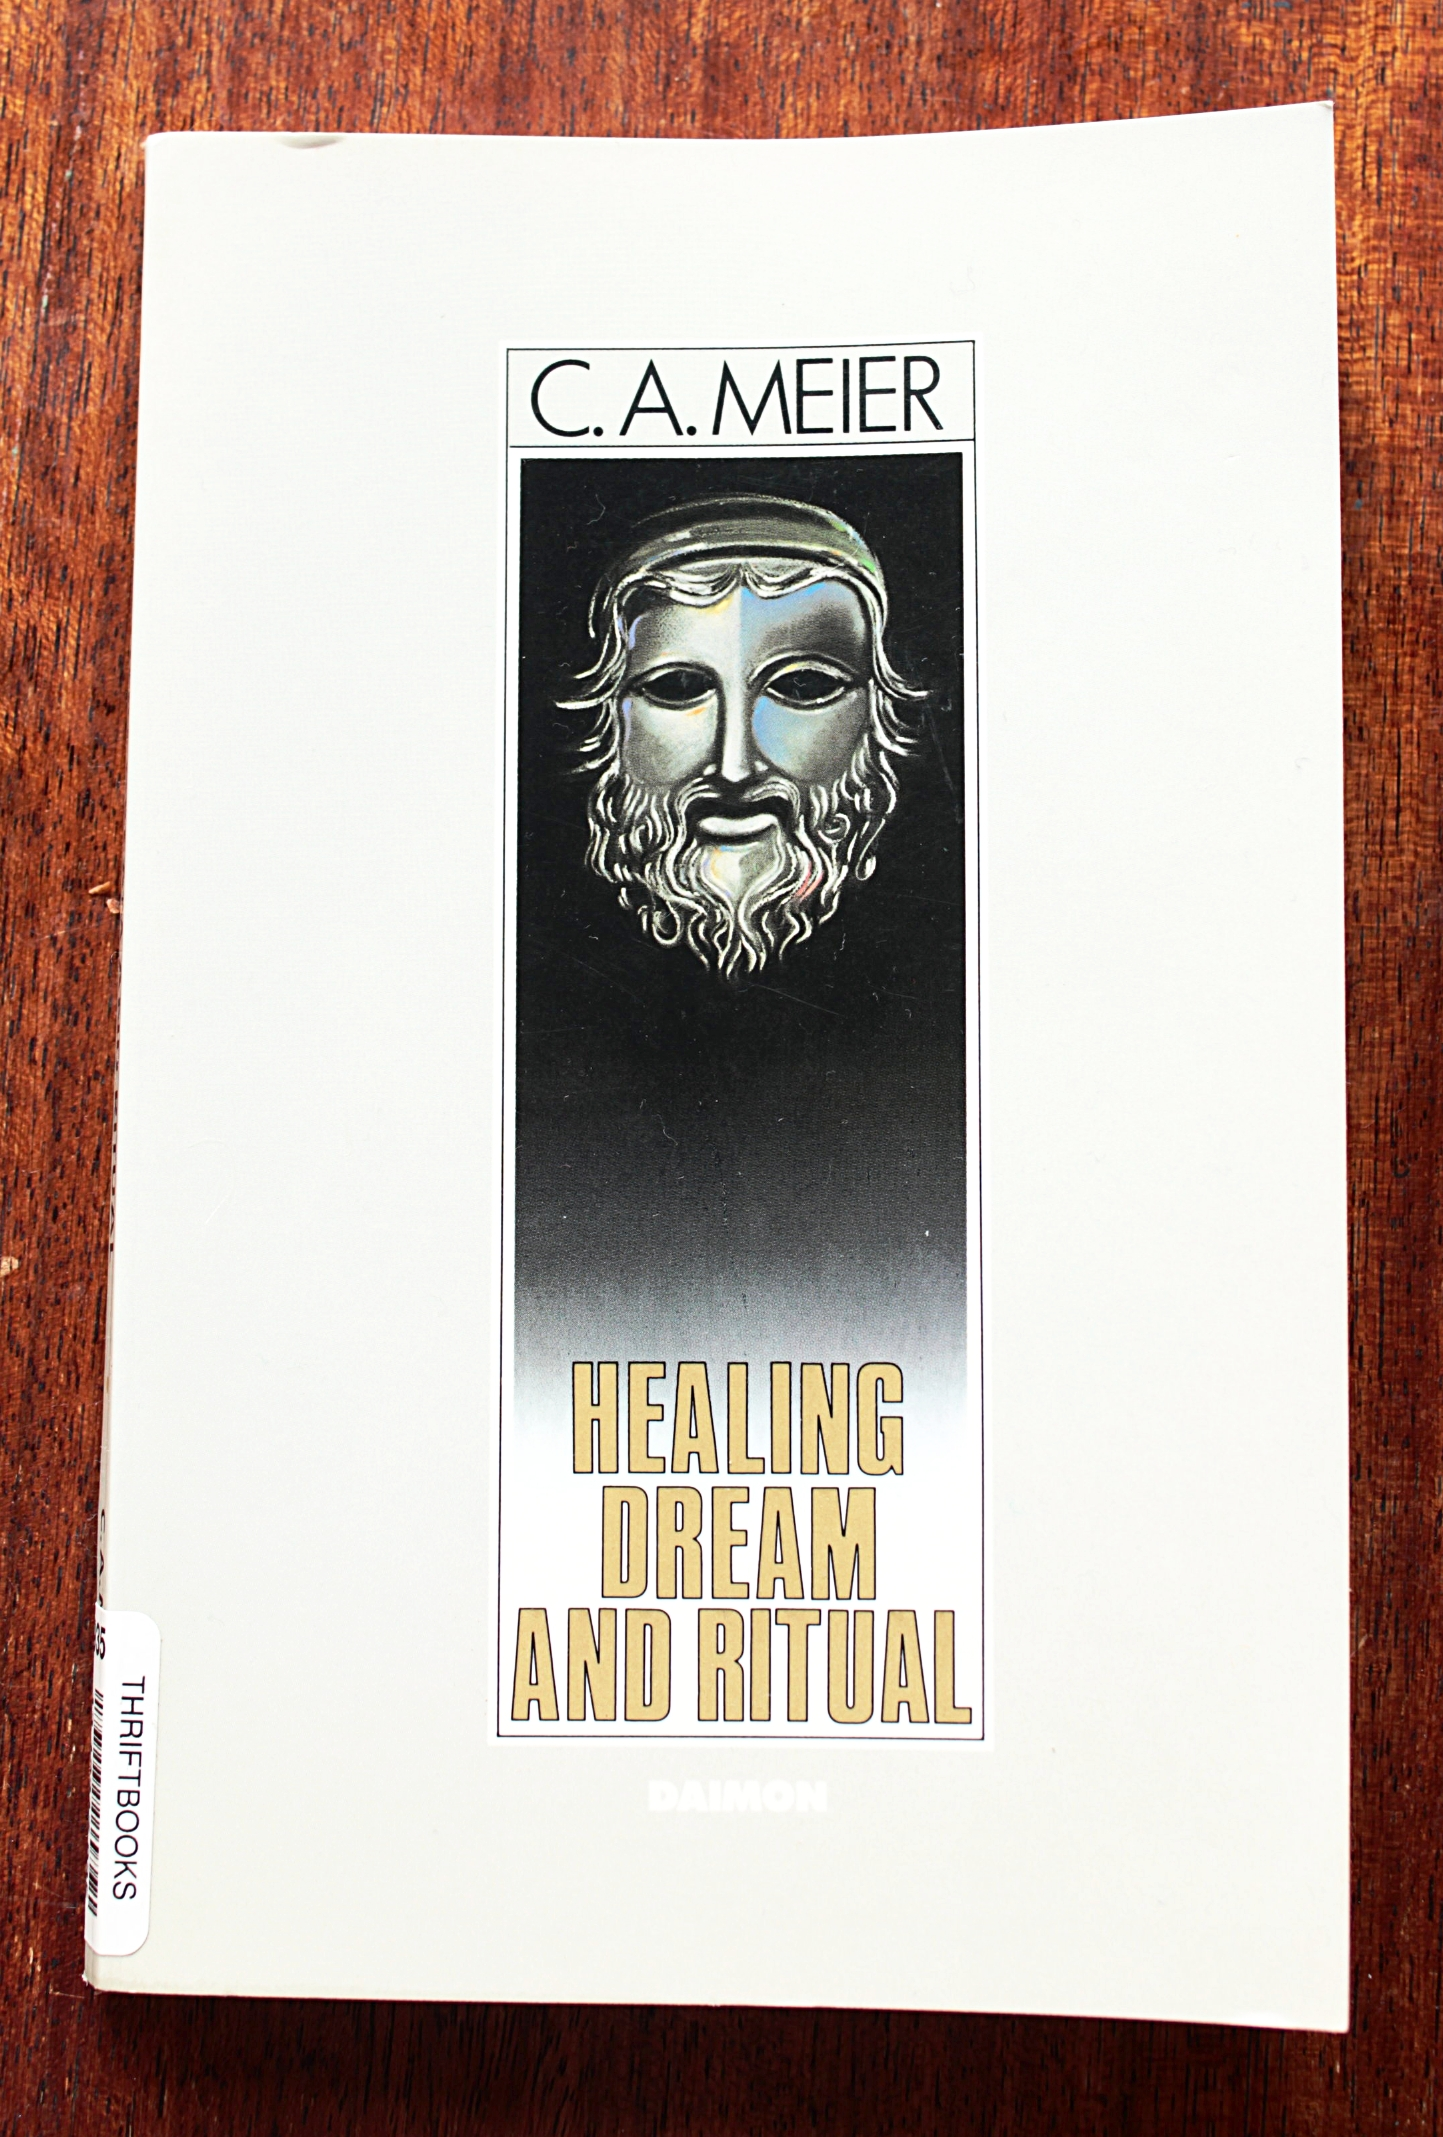 Healing Dream and Ritual - C.A. Meier - Professor C.A. Meier was a psychiatrist and psychotherapist in Switzerland. A co-founder of the C.G. Jung Institute and its president.This book is an exhaustive exploration of Greek Sleep Temple culture, history and the practice of dream incubation as a self-therapy.A comparative analysis of ancient incubation and modern, Jungian psychotherapy in which the human need for divine intervention is seen as the ideal device for activating a self-healing mechanism within the psyche.According to Jung modern humans suffer when they feel a remoteness from God. Healing occurs when the distance is reconciled. Dreams are the journeys the unconscious embarks upon to re-integrate with the divine.